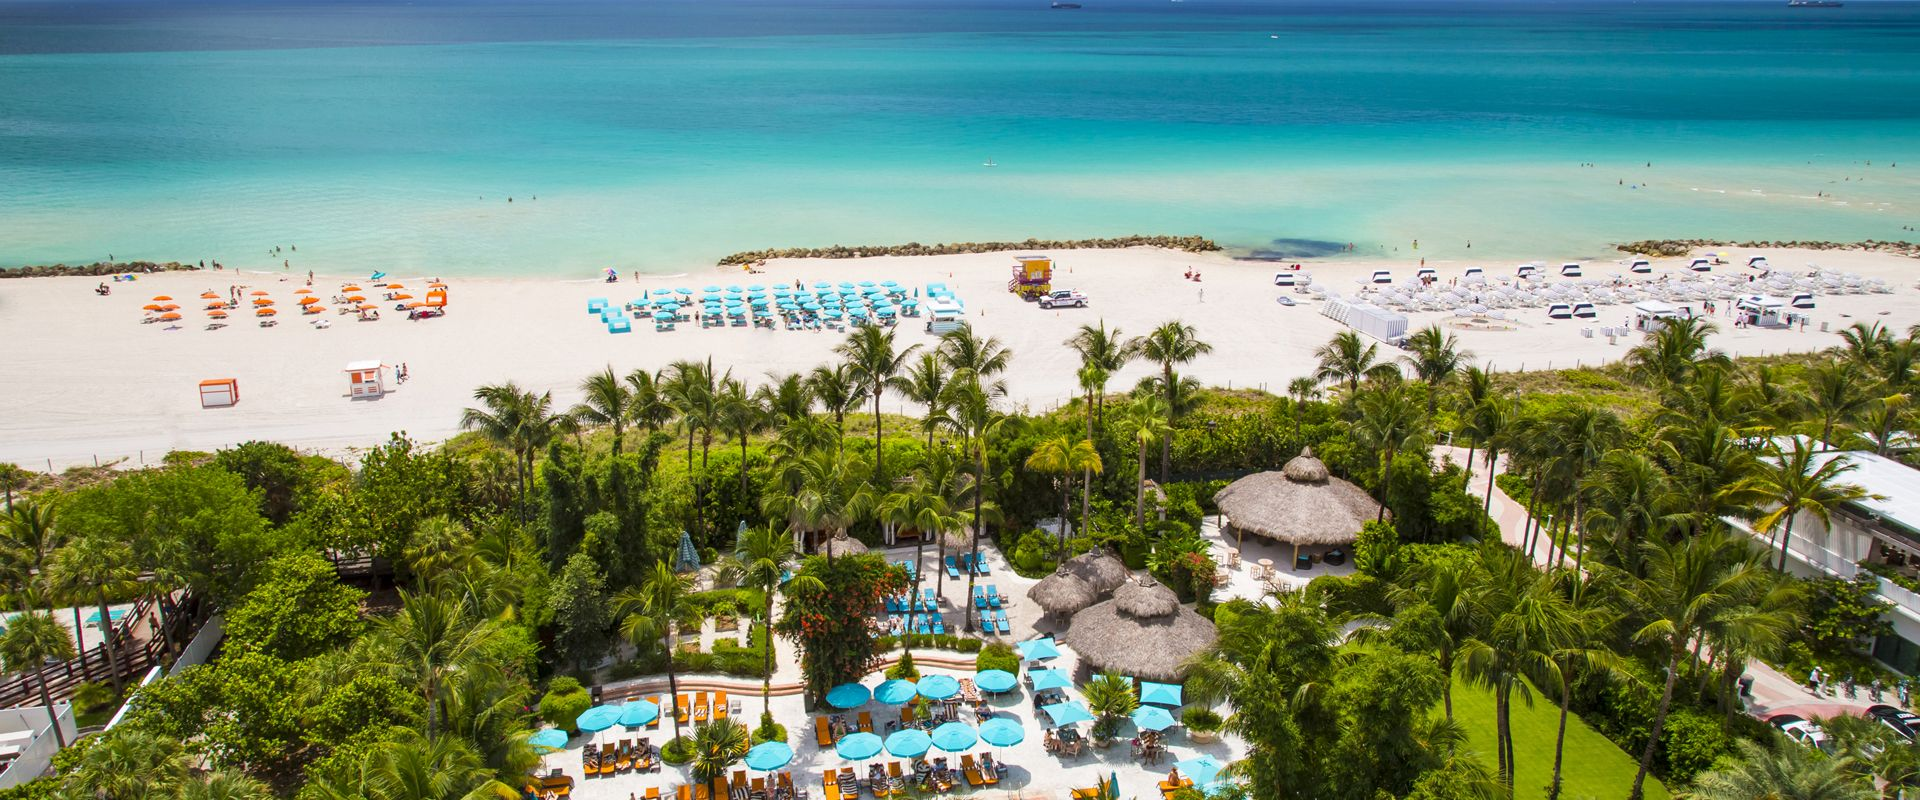 Cheap flights from chicago to miami florida resorts